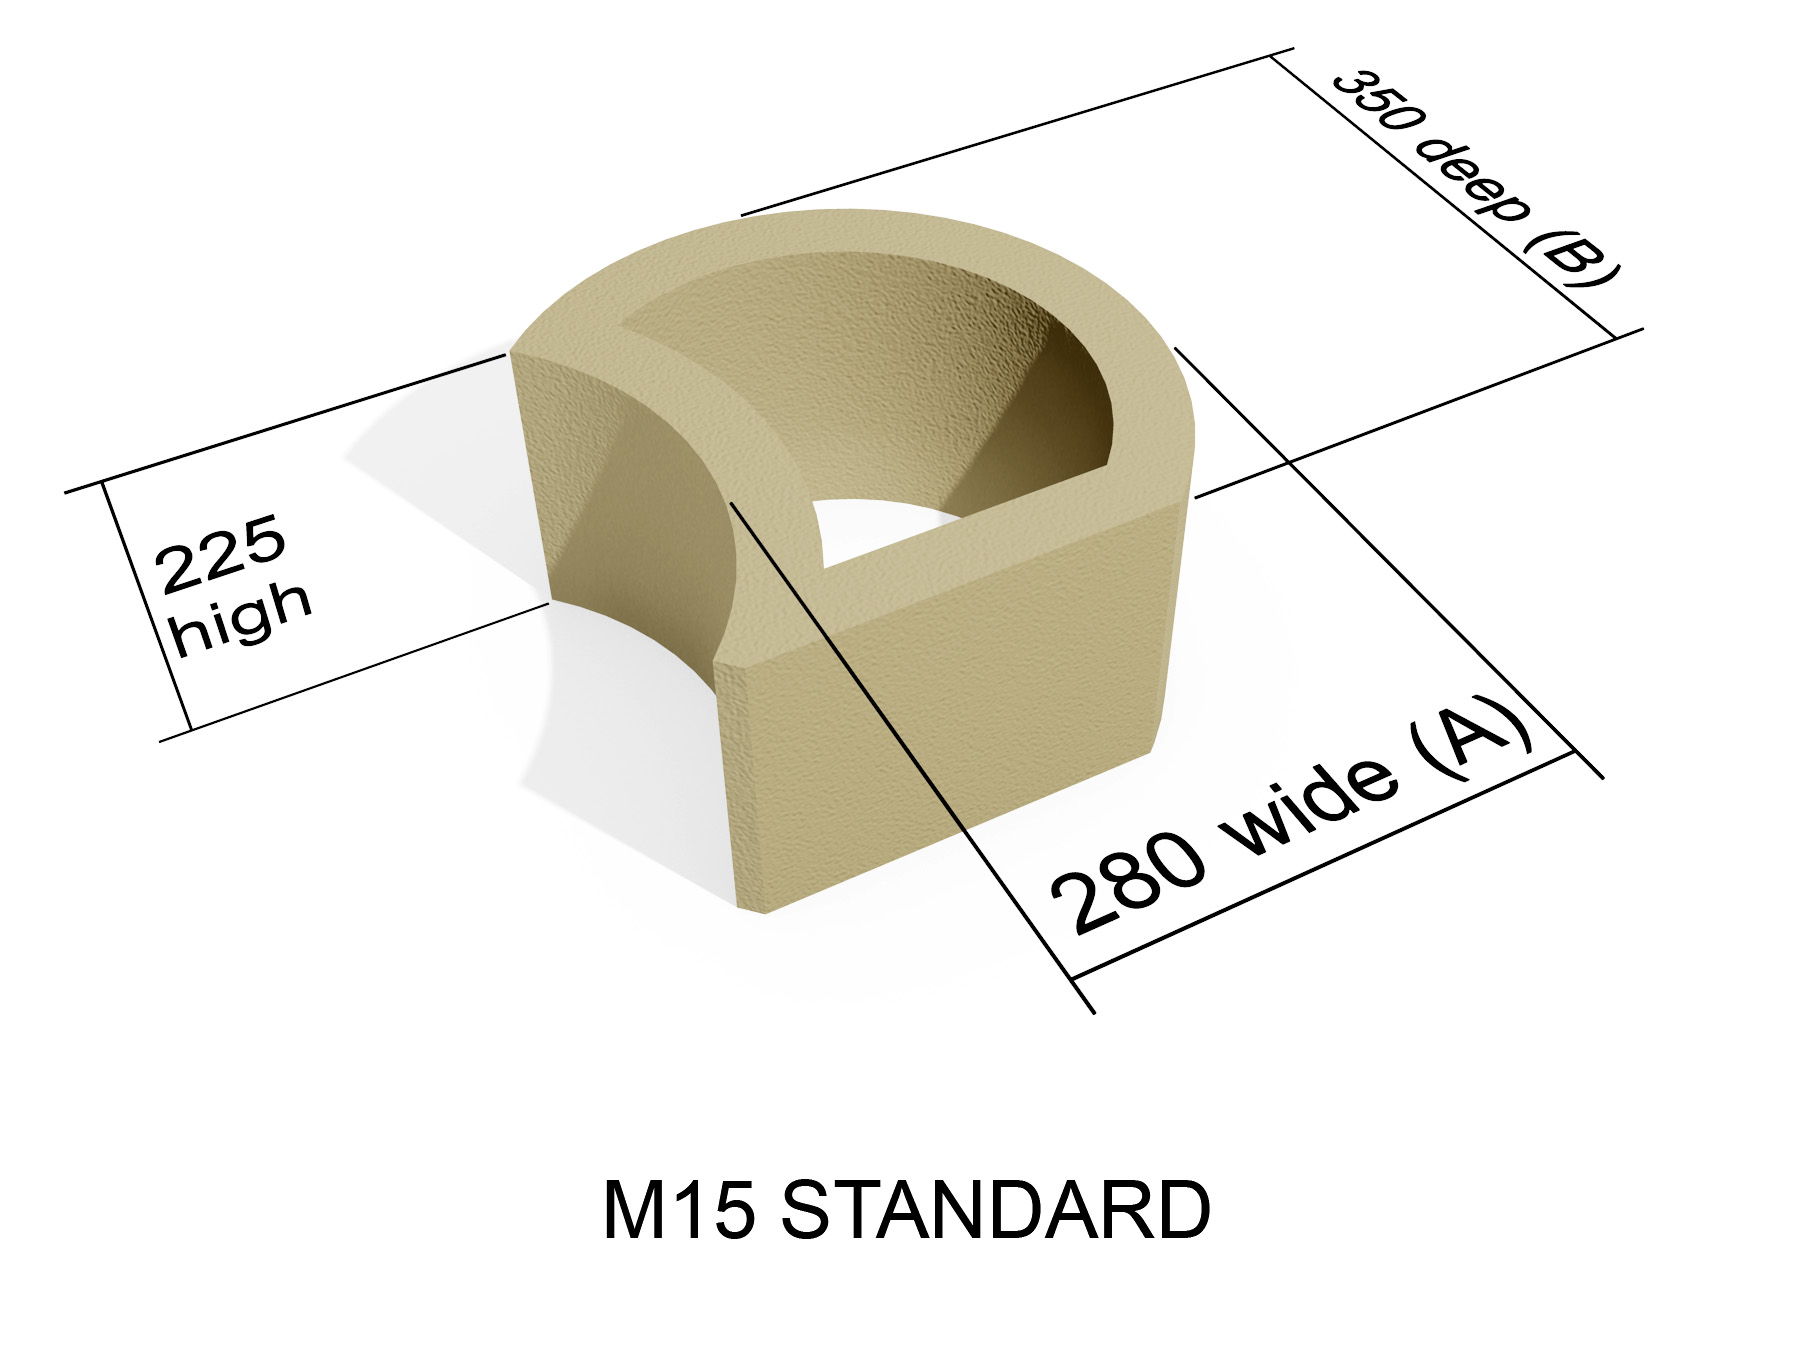 M15 smooth face retaining block